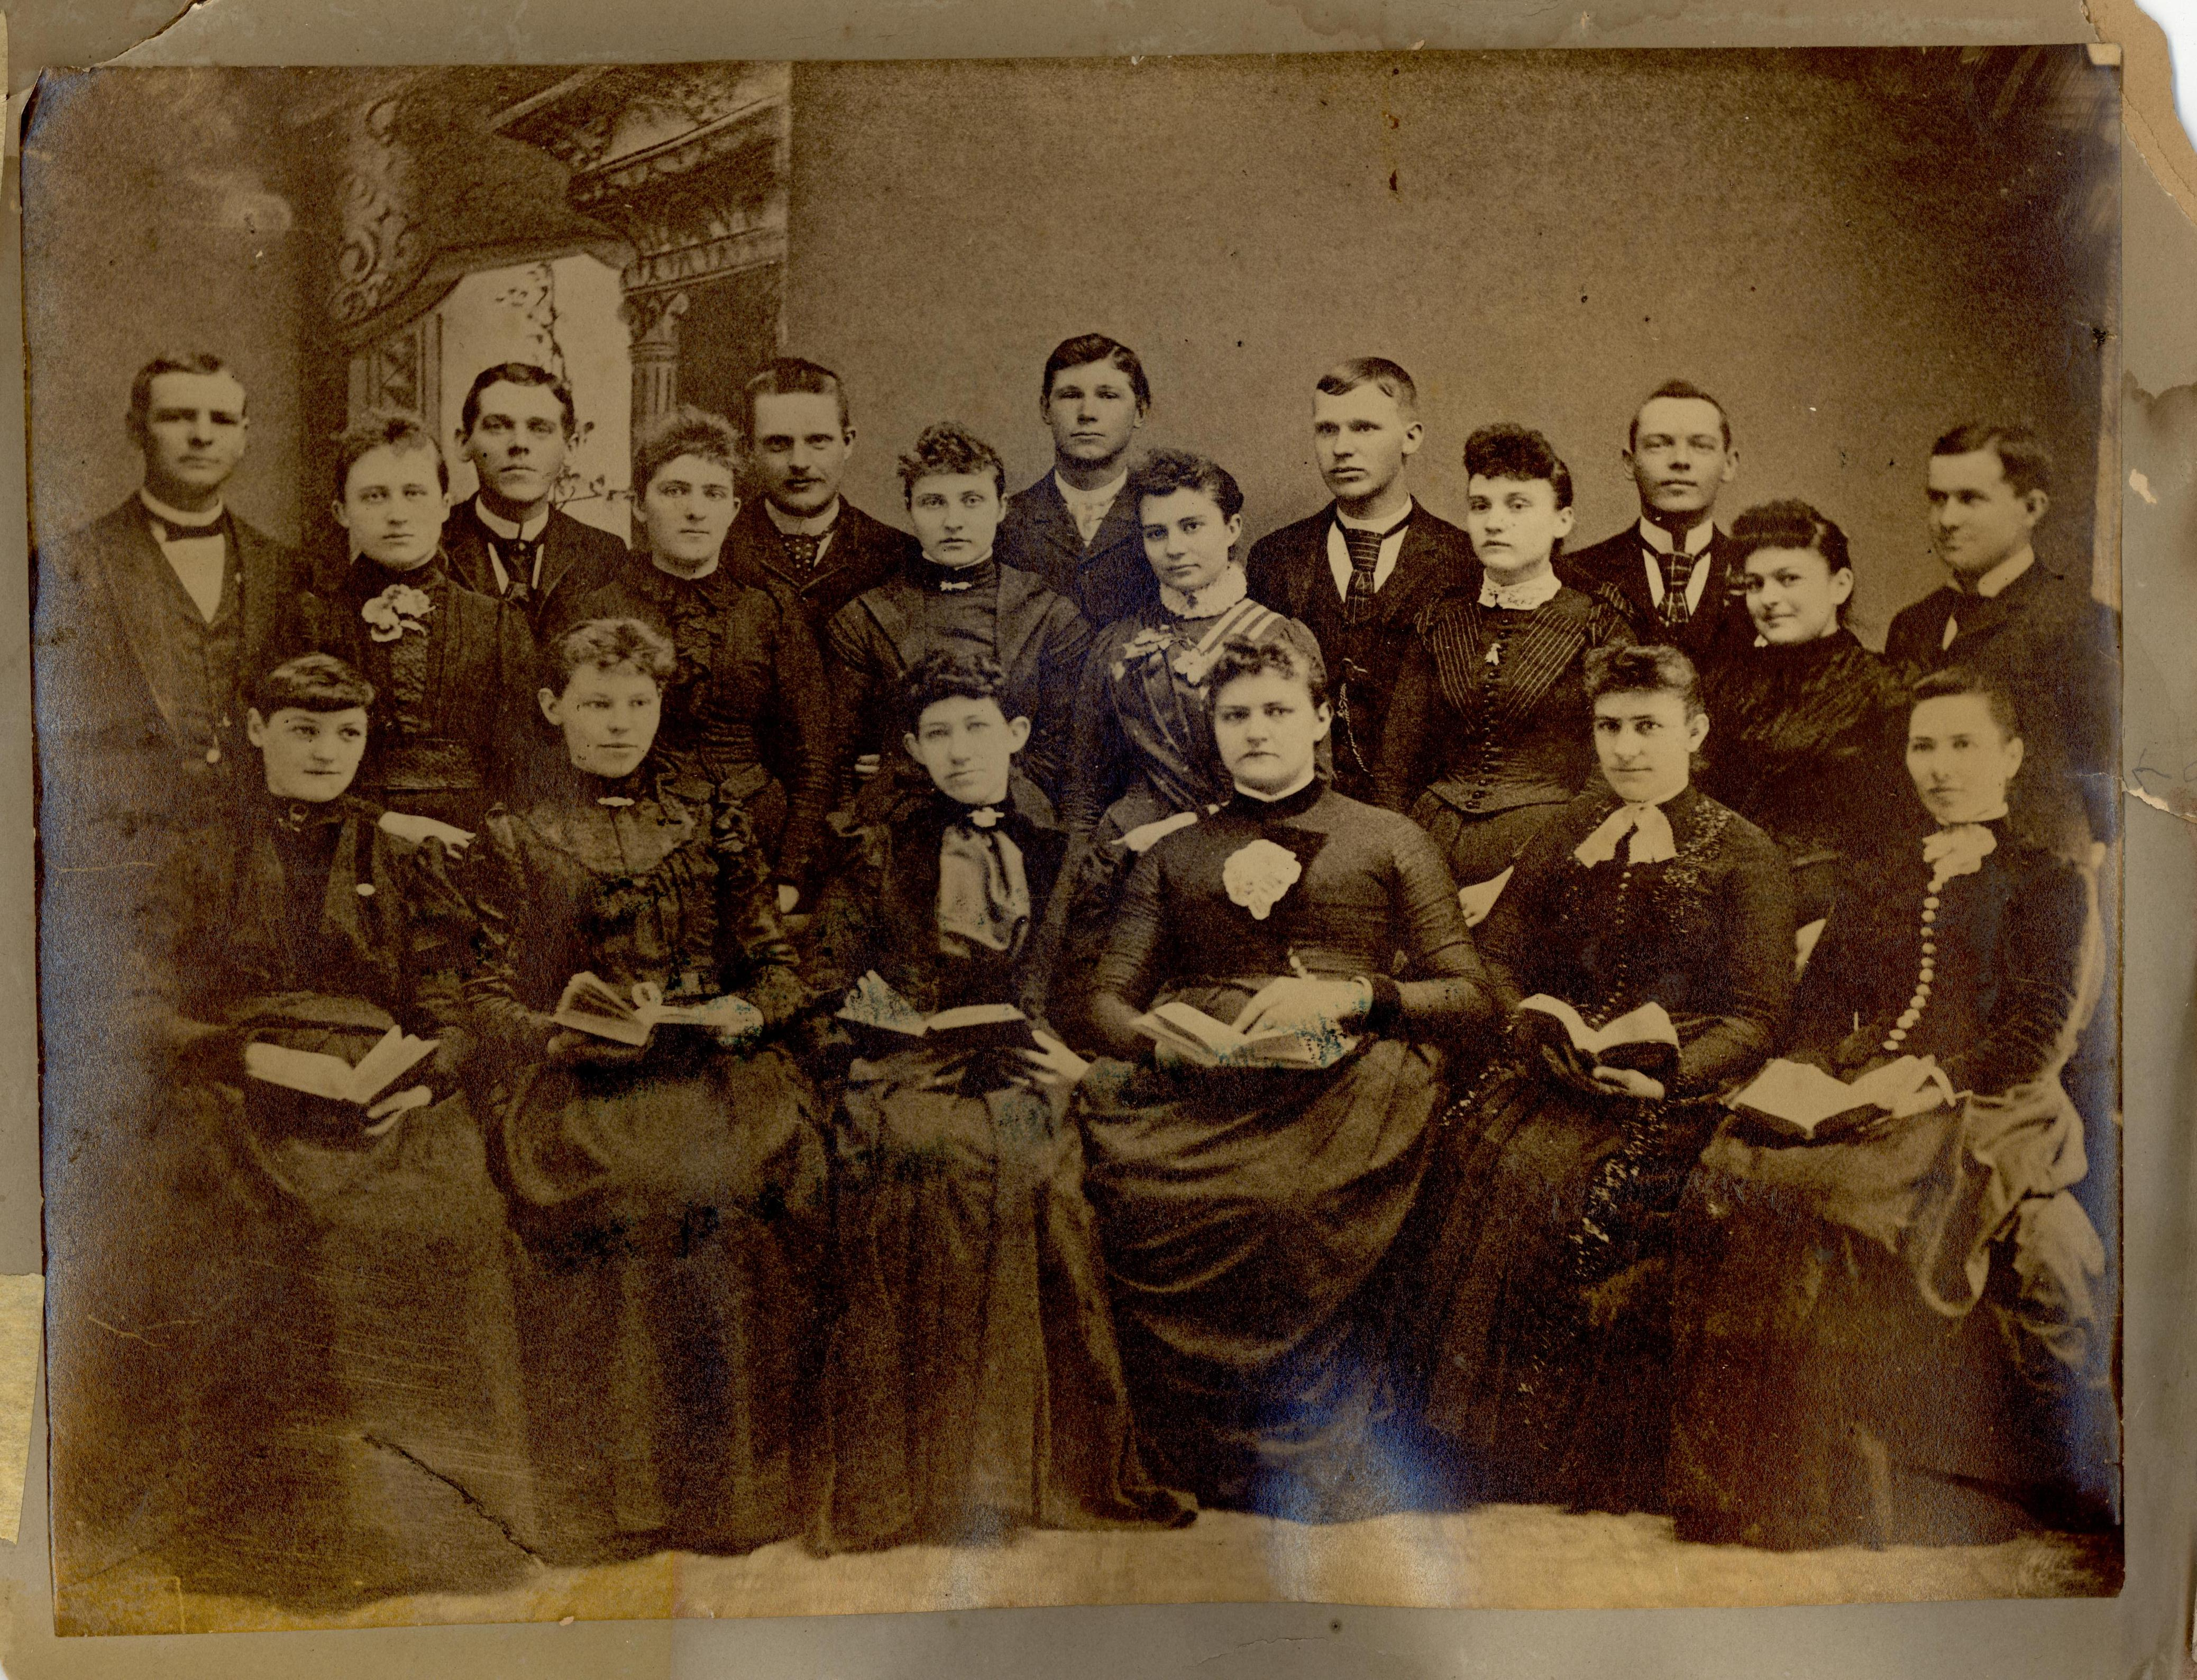 1893 Sunday School